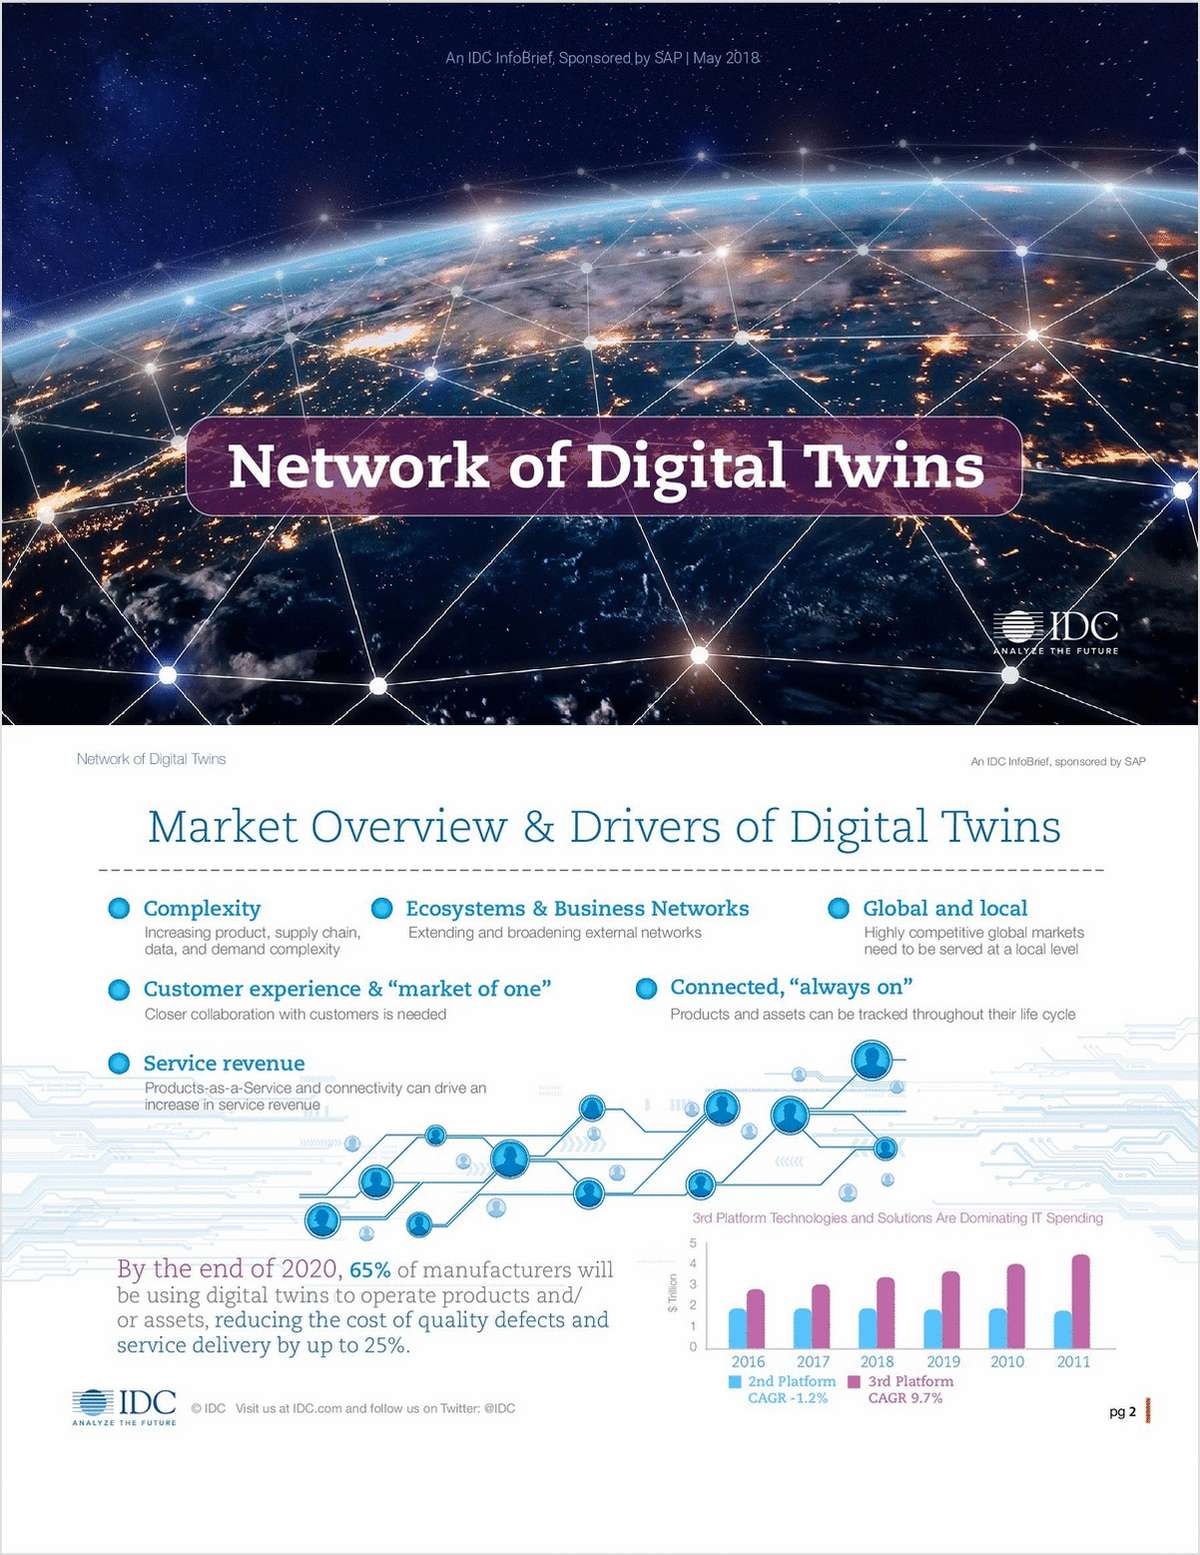 Network of Digital Twins